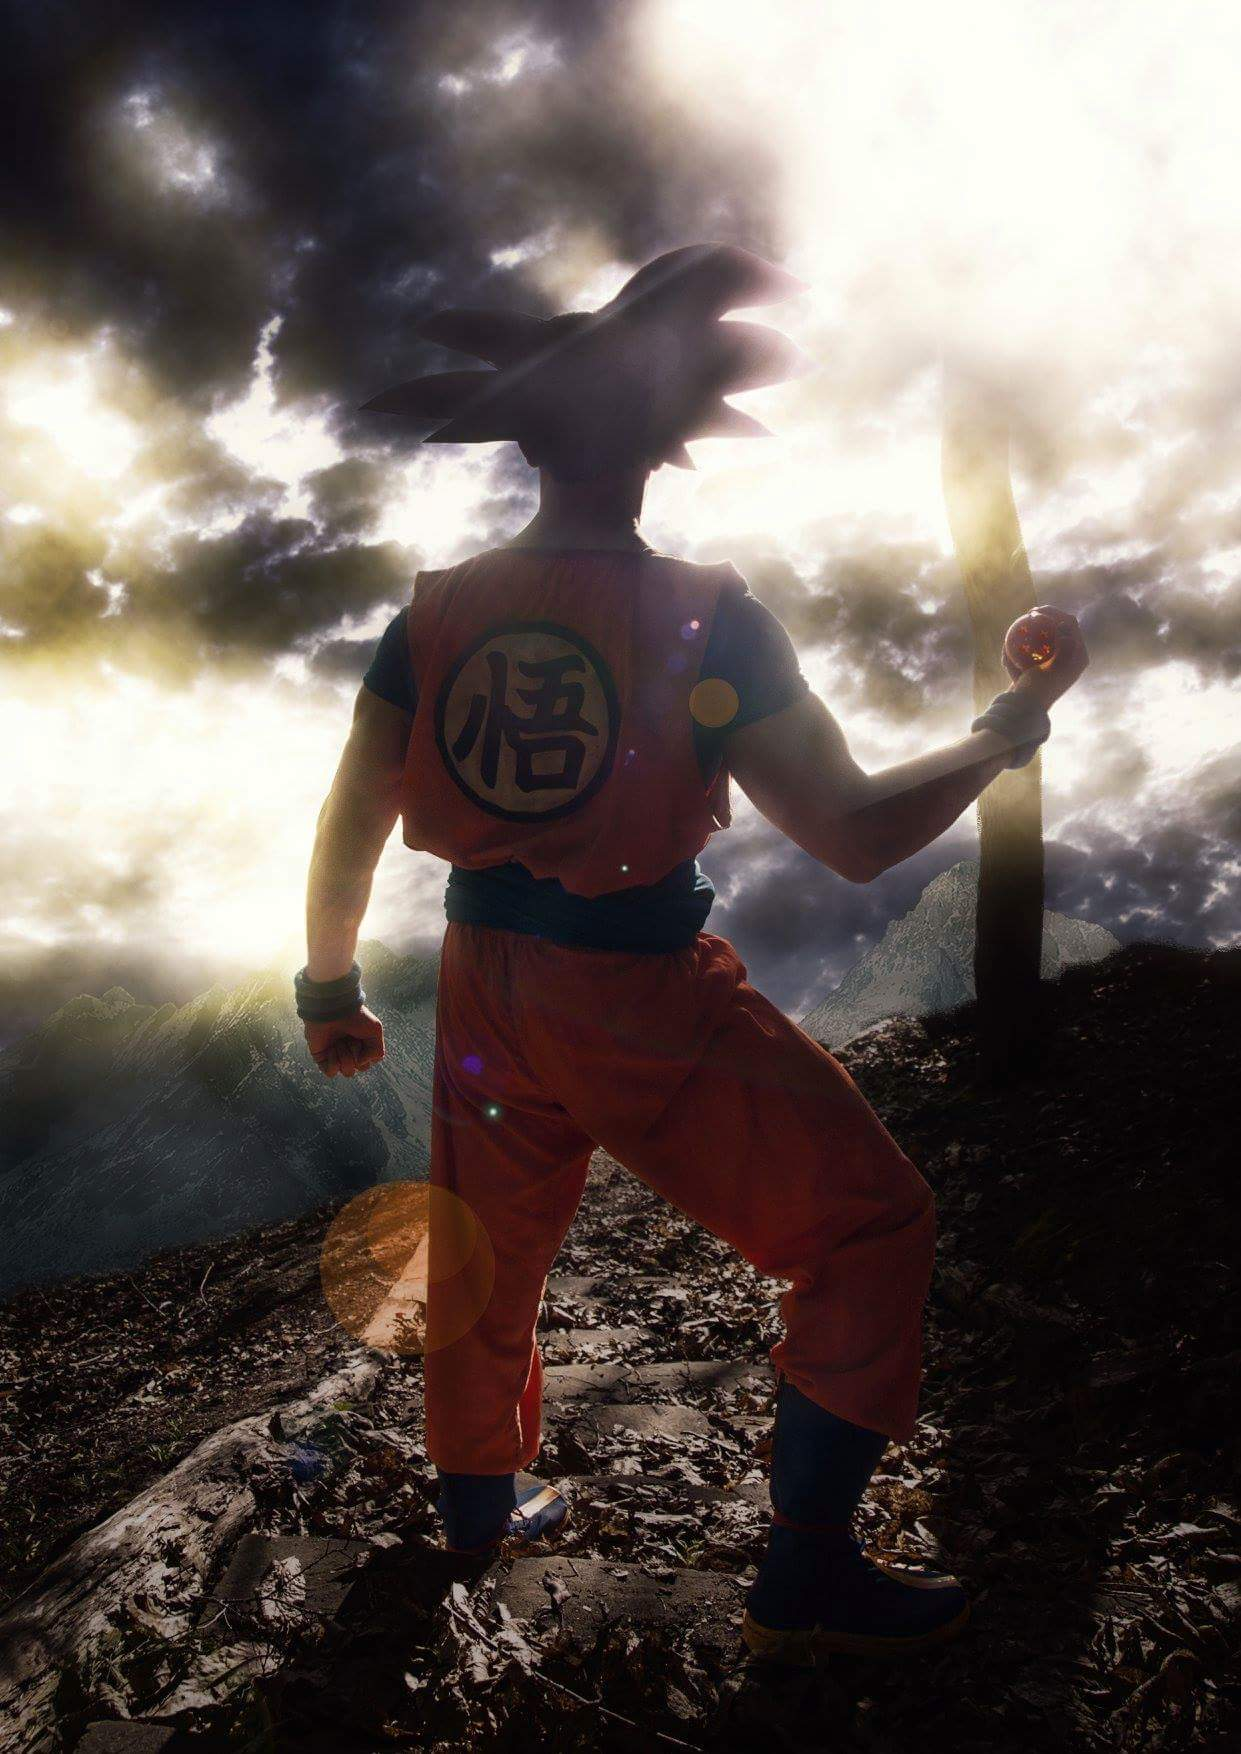 Son Goku from Dragon Ball Z Super Cosplay holding a dragonball whilst viewing the horizon